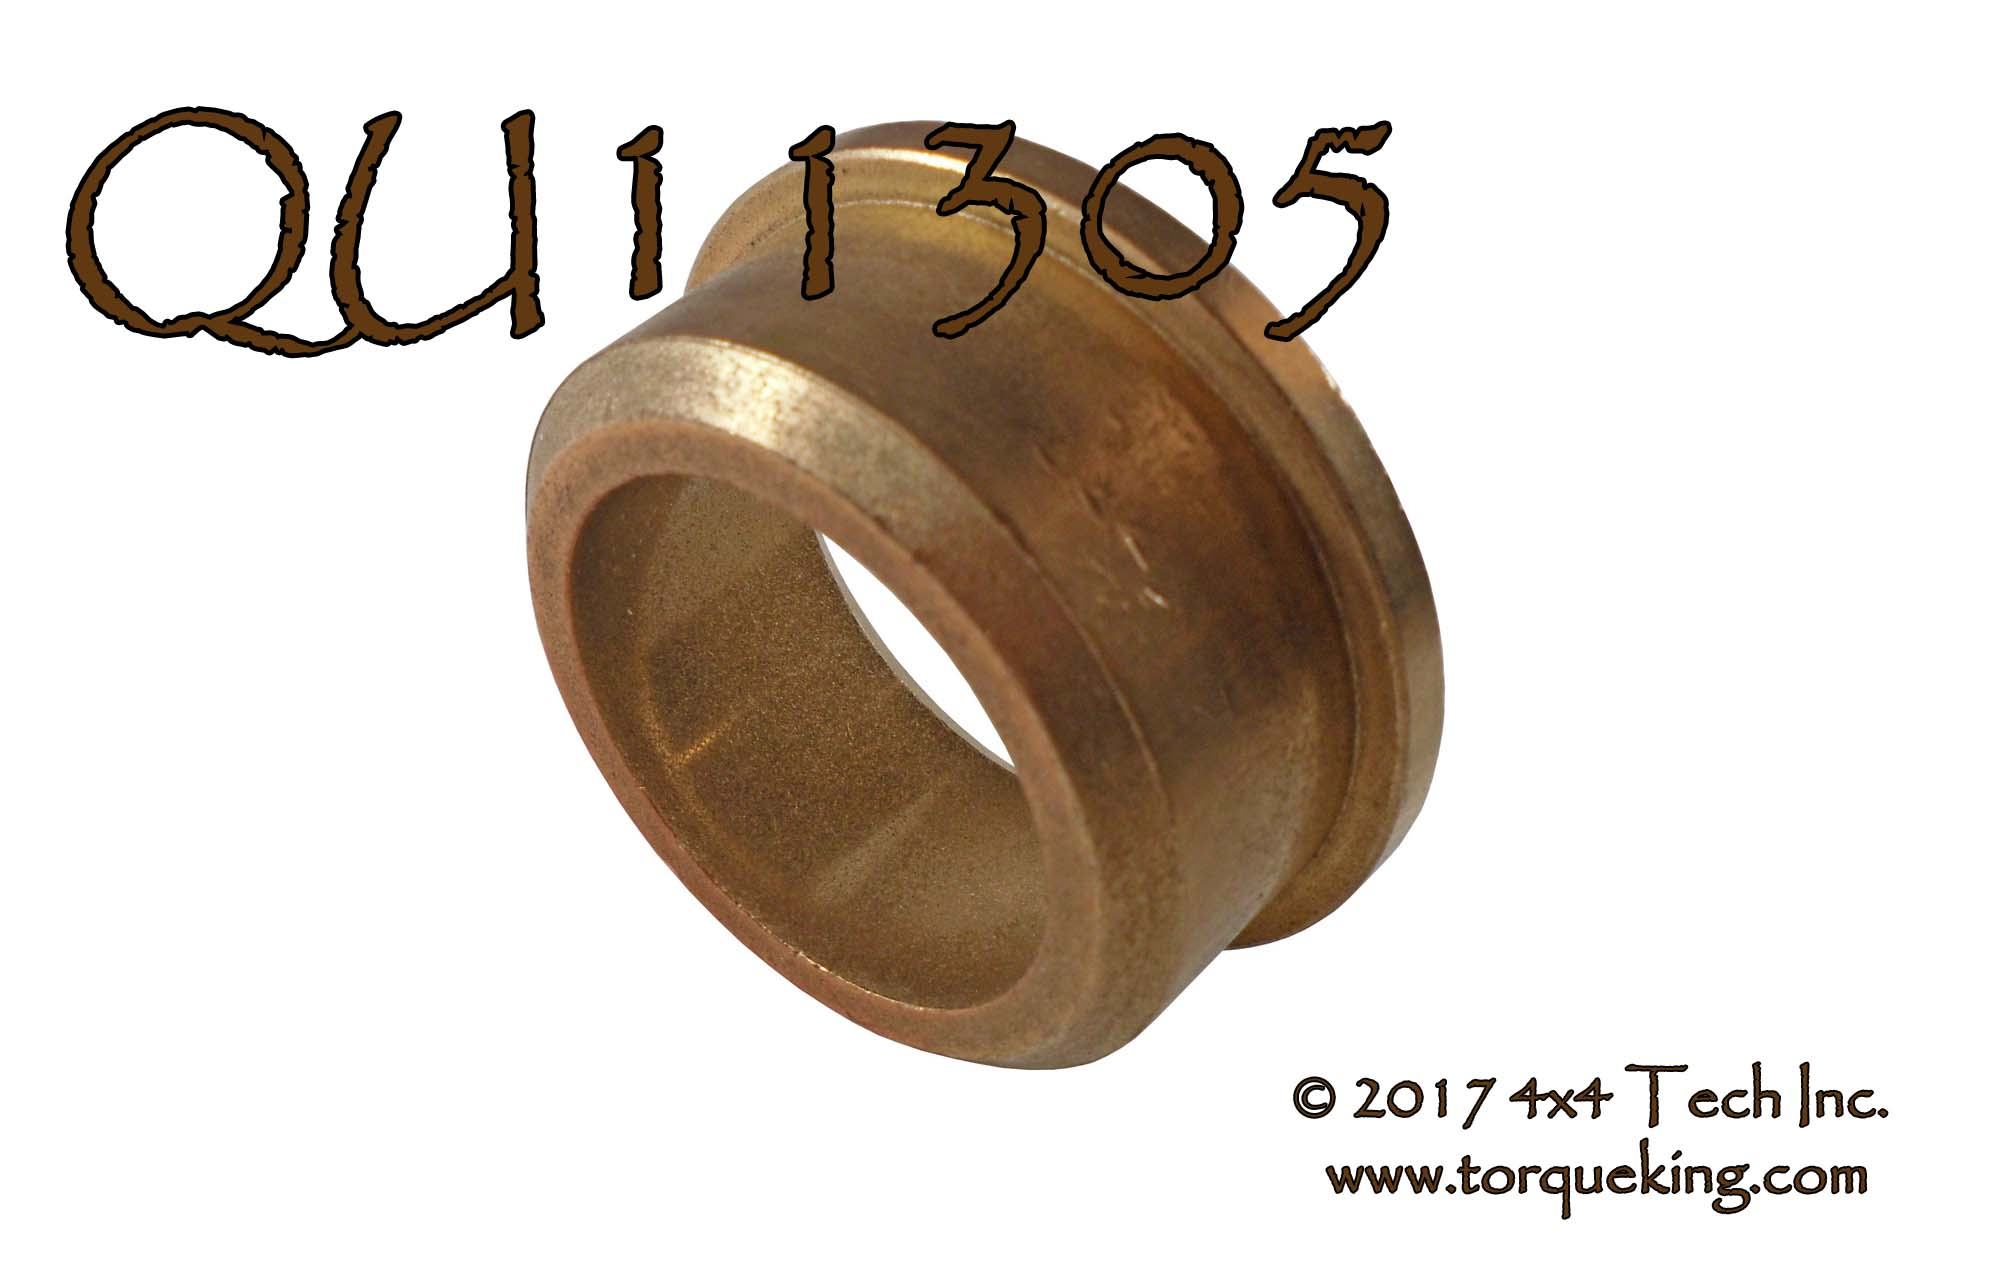 Dodge1955 1972pwfrontaxle Torque King 4x4 Dodge Power Wagon Front Axle Qu11305 Shaft Support Bushing For 1946 1978 Civilian 1 Ton Including Export Models And 1951 1968 Military M37